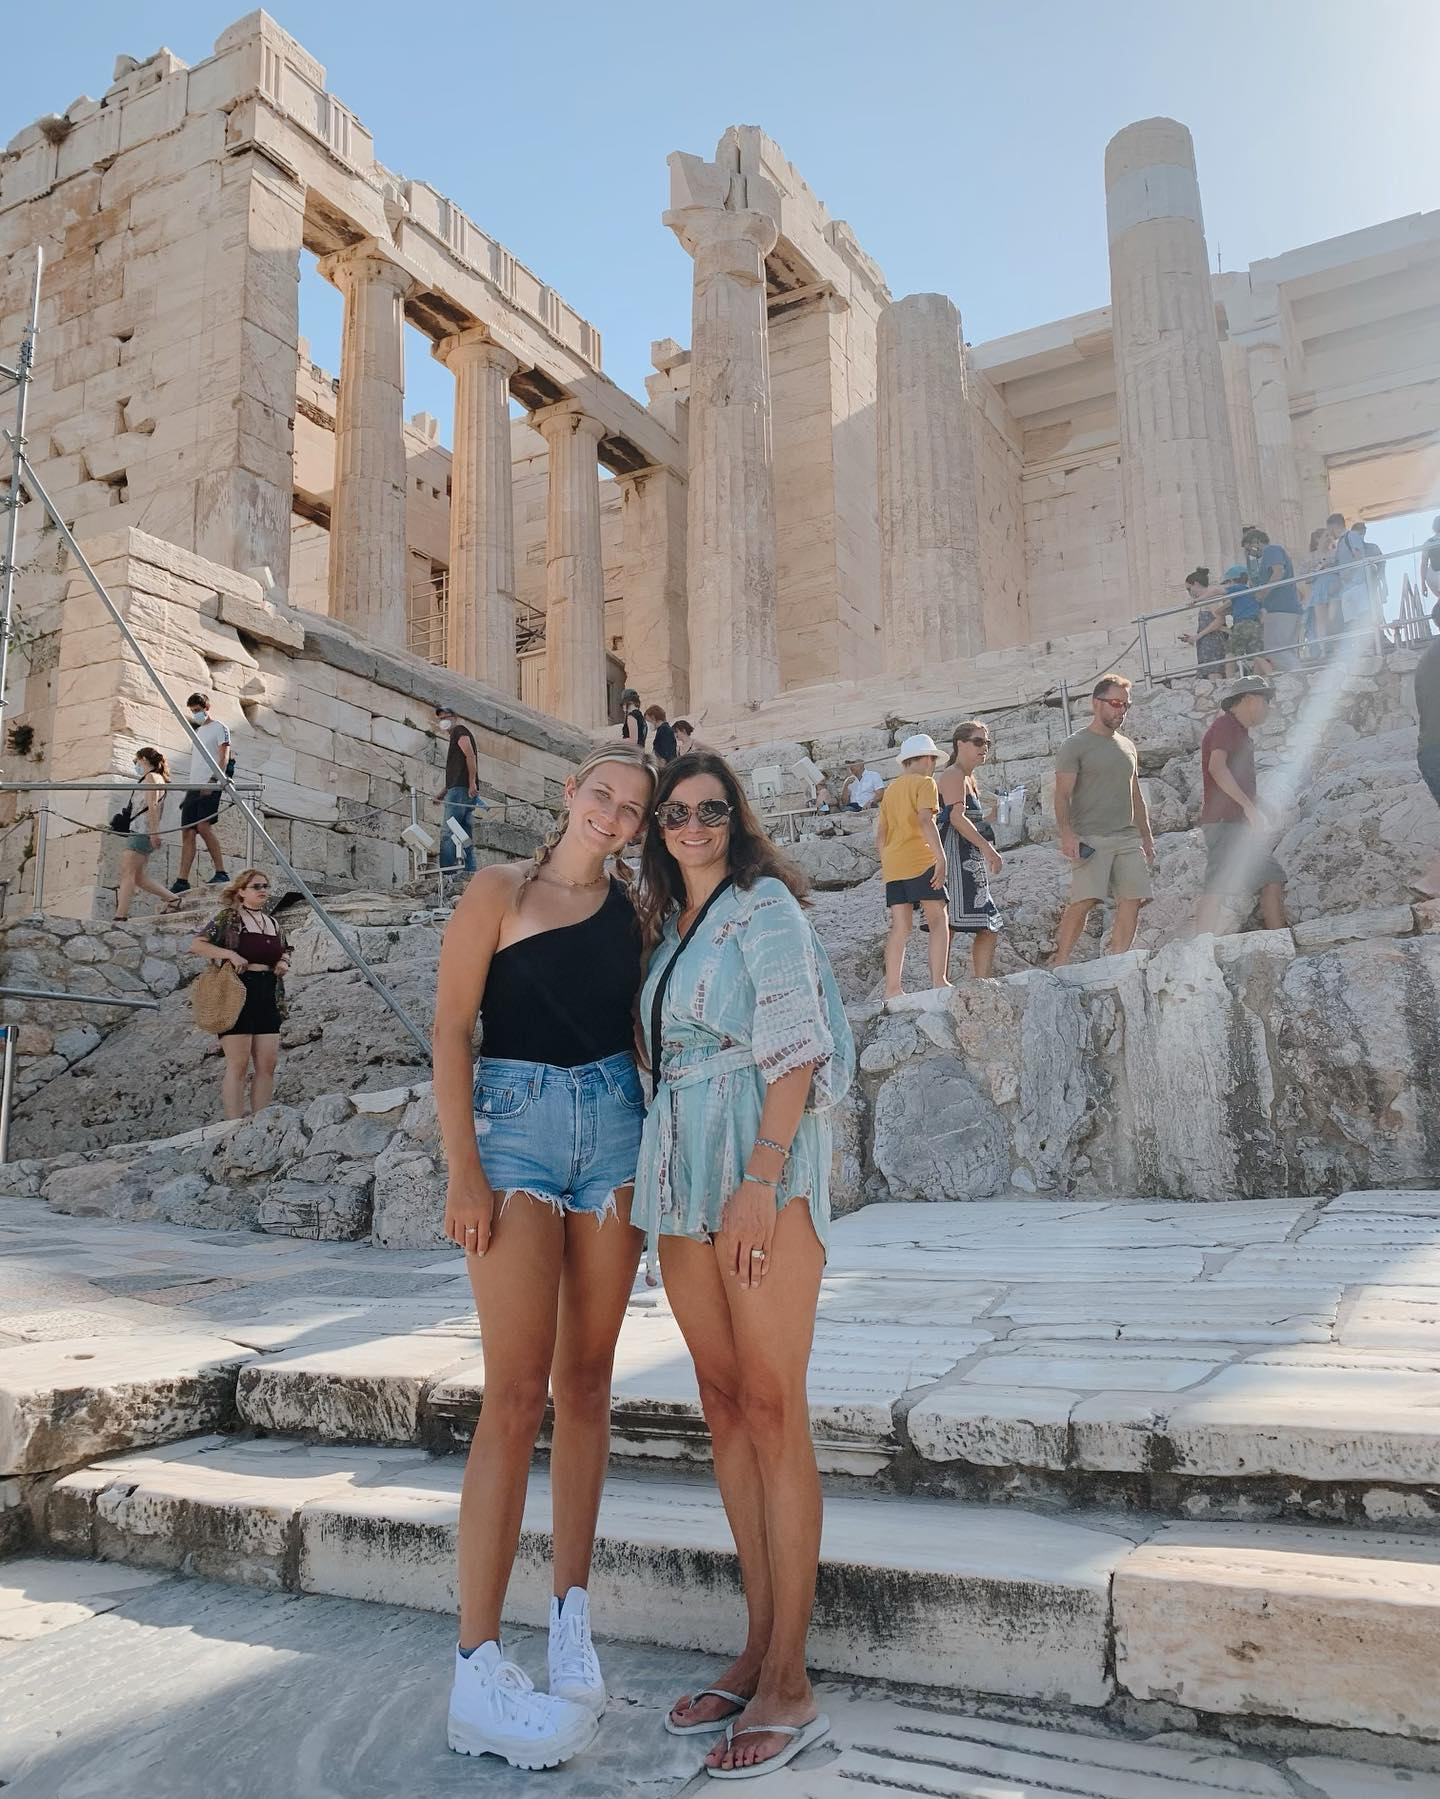 Chloe (left) and Angie (right) in Athens, Greece